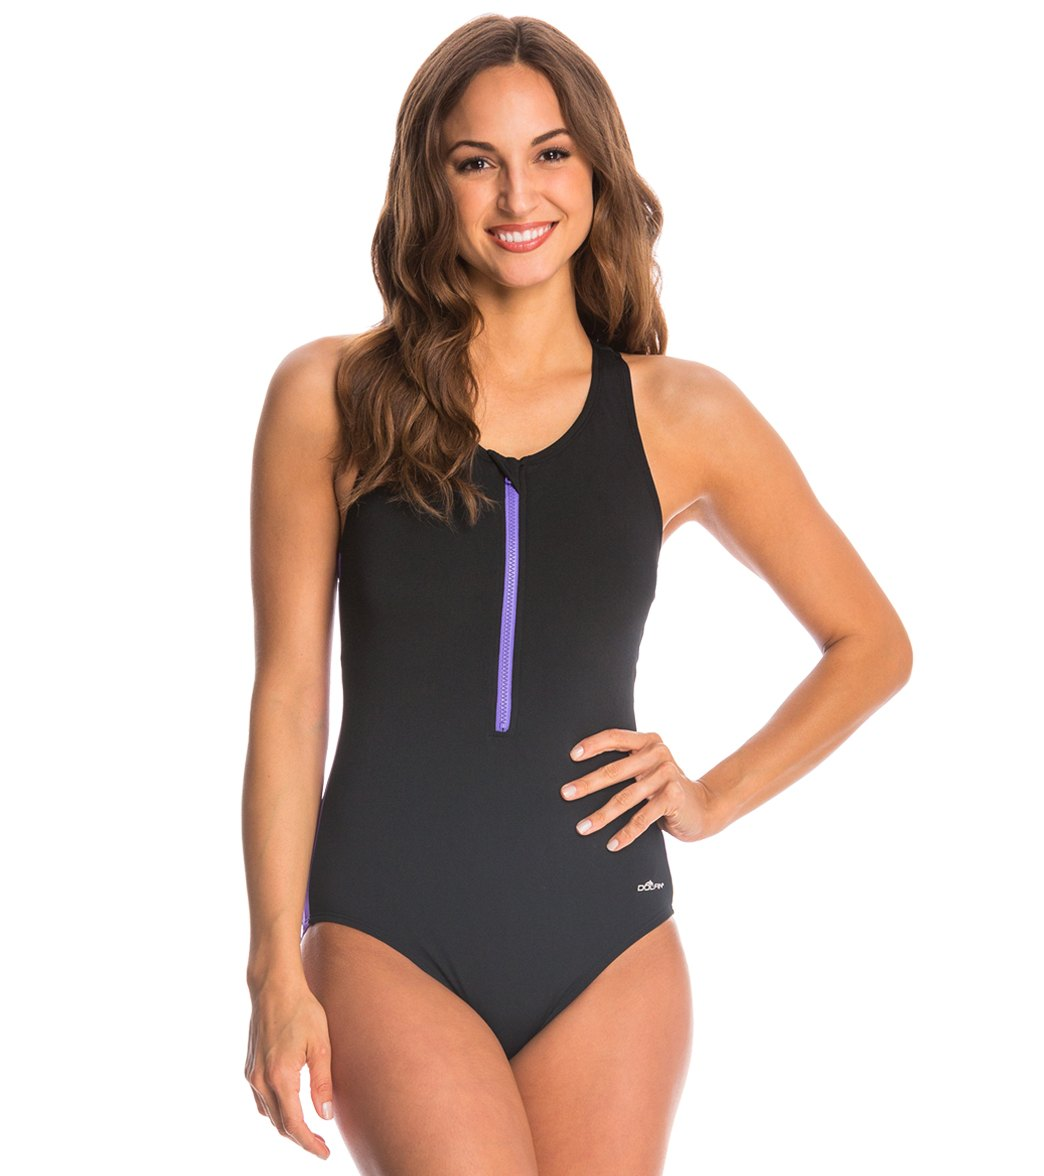 94e3b697ab5c4 Dolfin Aquashape Zip-Front Racerback One Piece Swimsuit at SwimOutlet.com -  Free Shipping